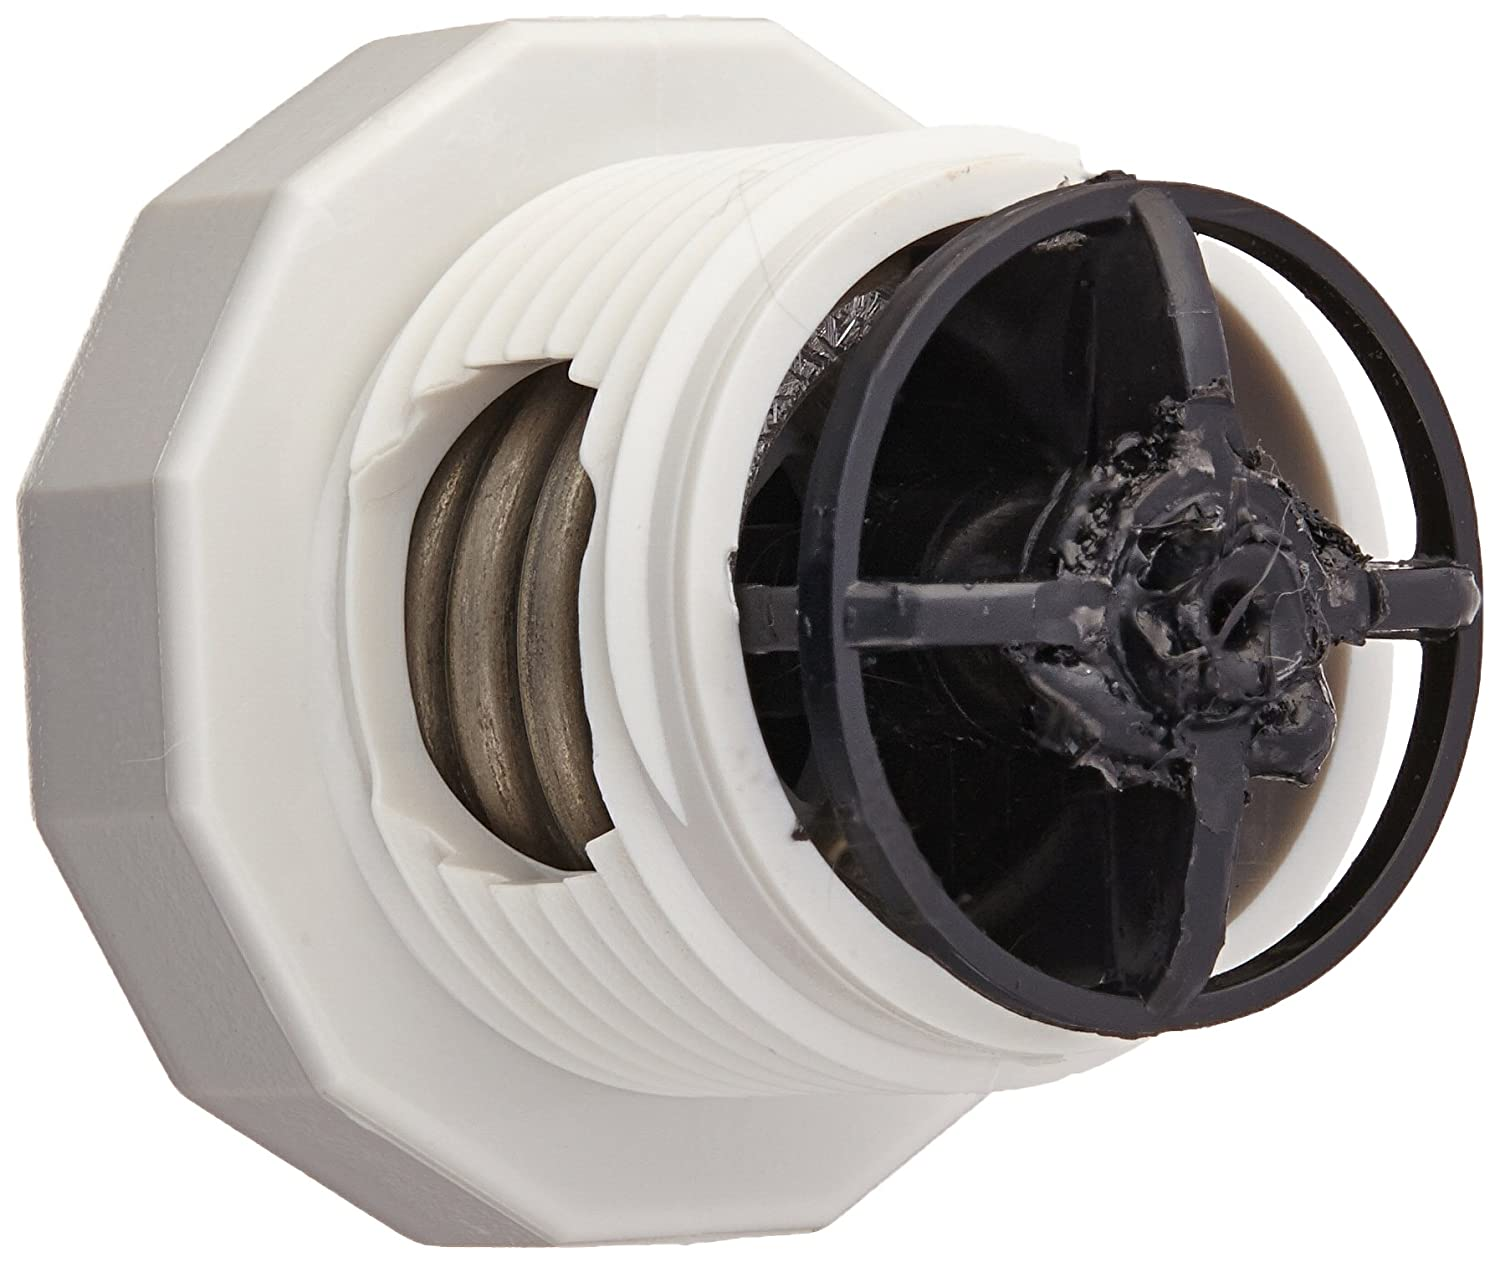 Polaris 9-100-9002 Pressure Relief Valve Replacement